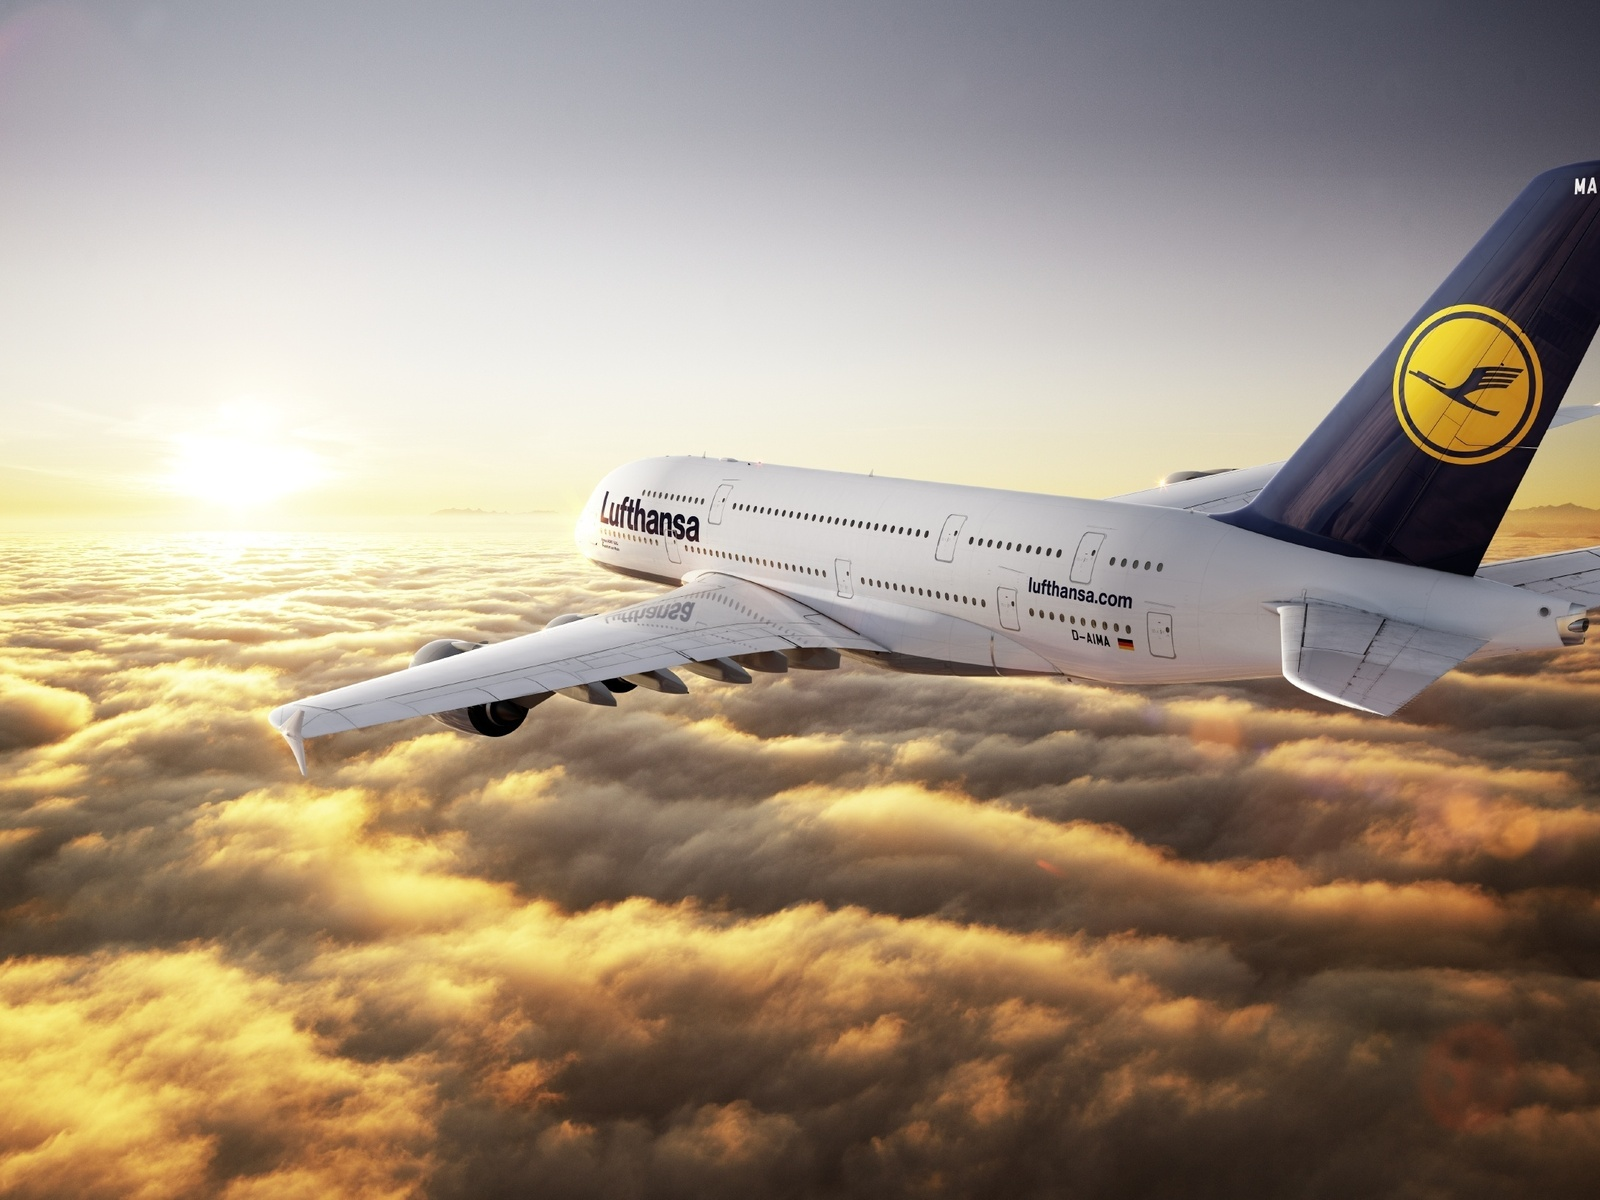 Lufthansa airplane in the clouds